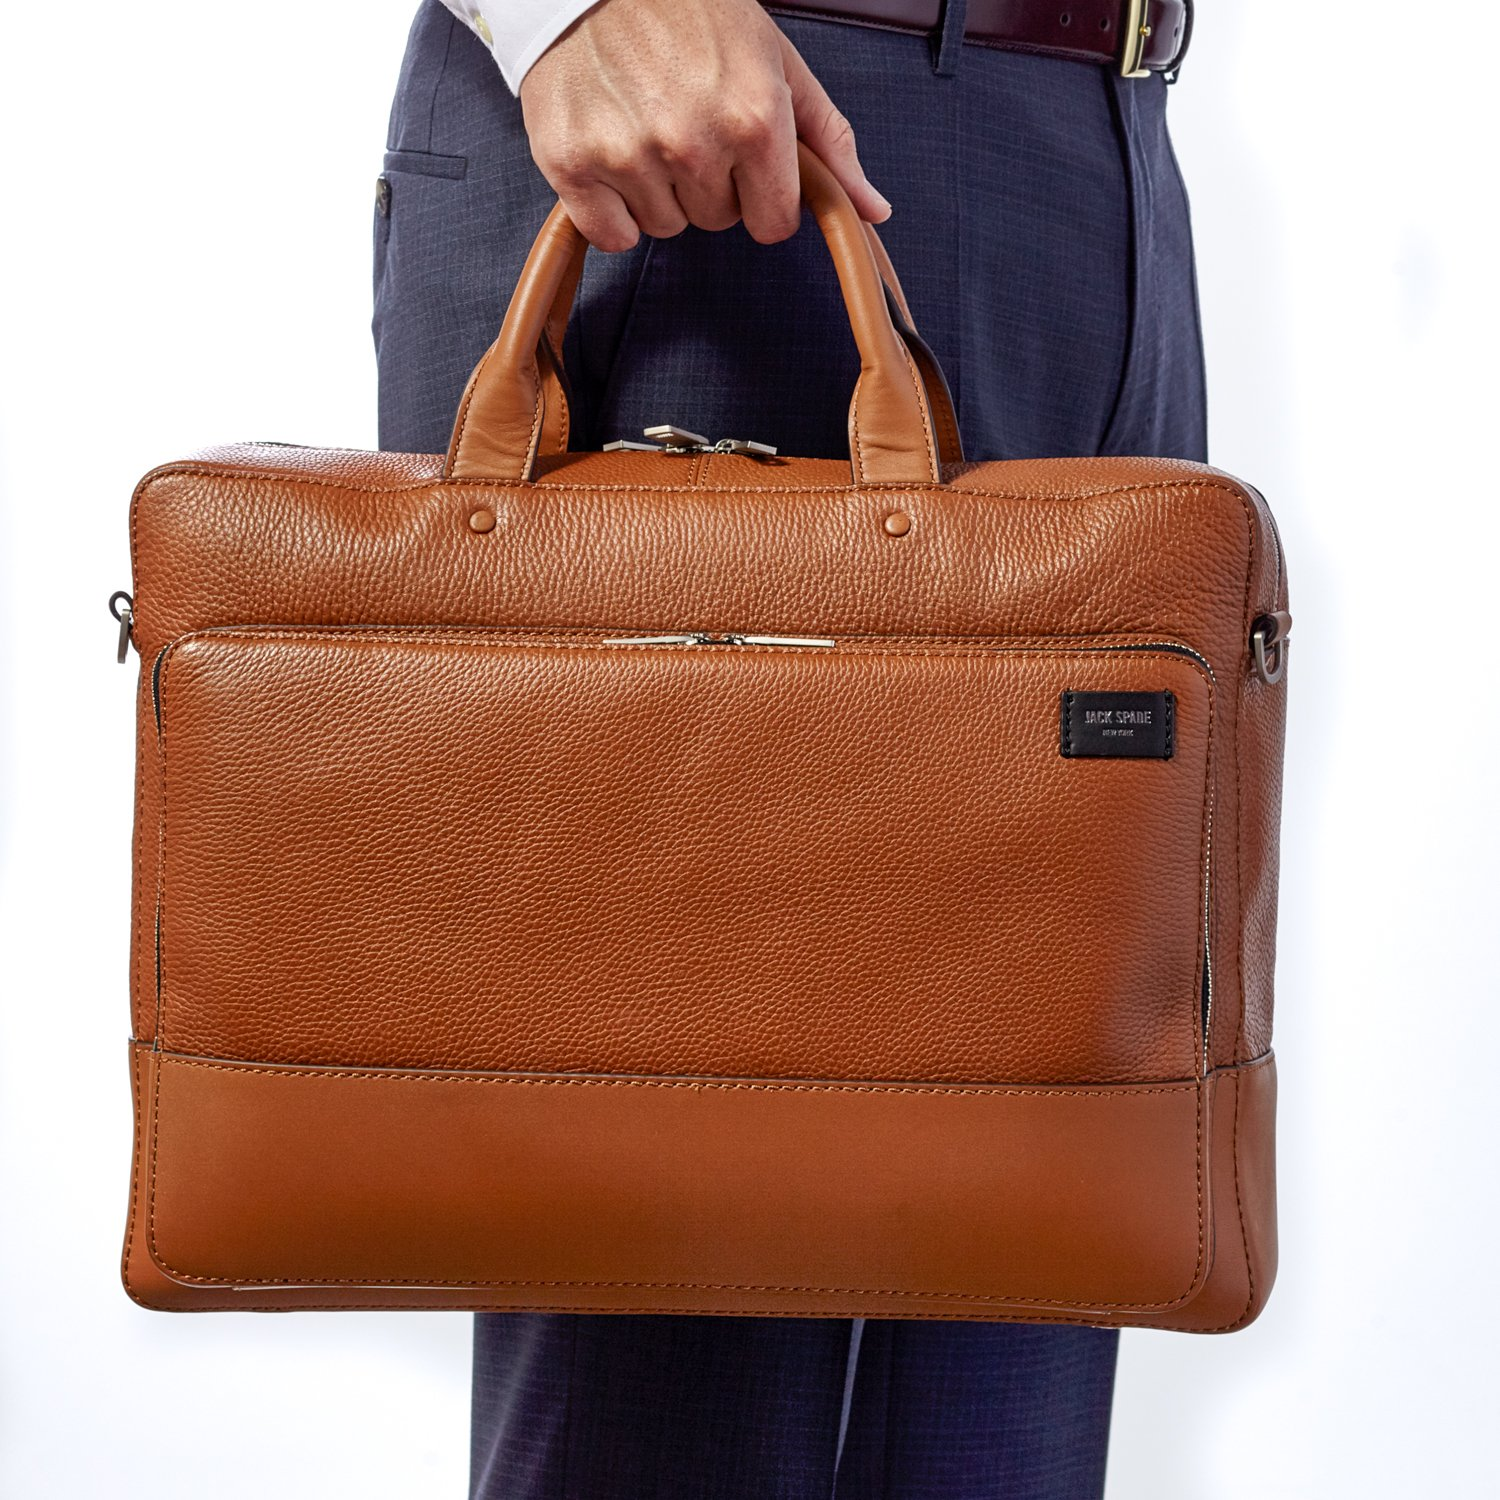 Jack Spade, Mason Pebble Leather Commuter Briefcase Bag, Fits 15'' Laptop - Tan